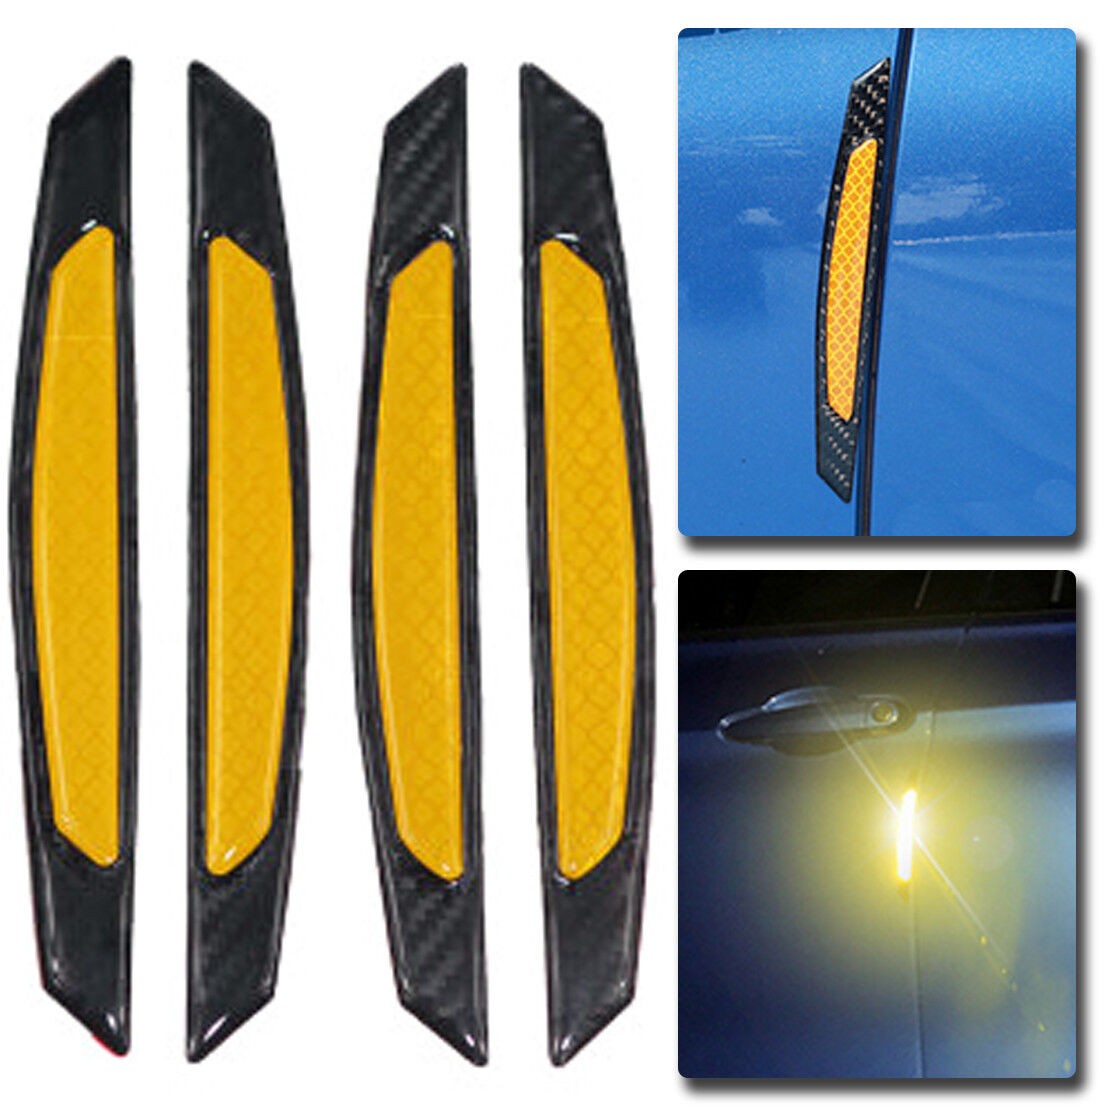 4X Yellow Reflective Carbon Fiber Car Door Edge Protector anti-collision Sticker